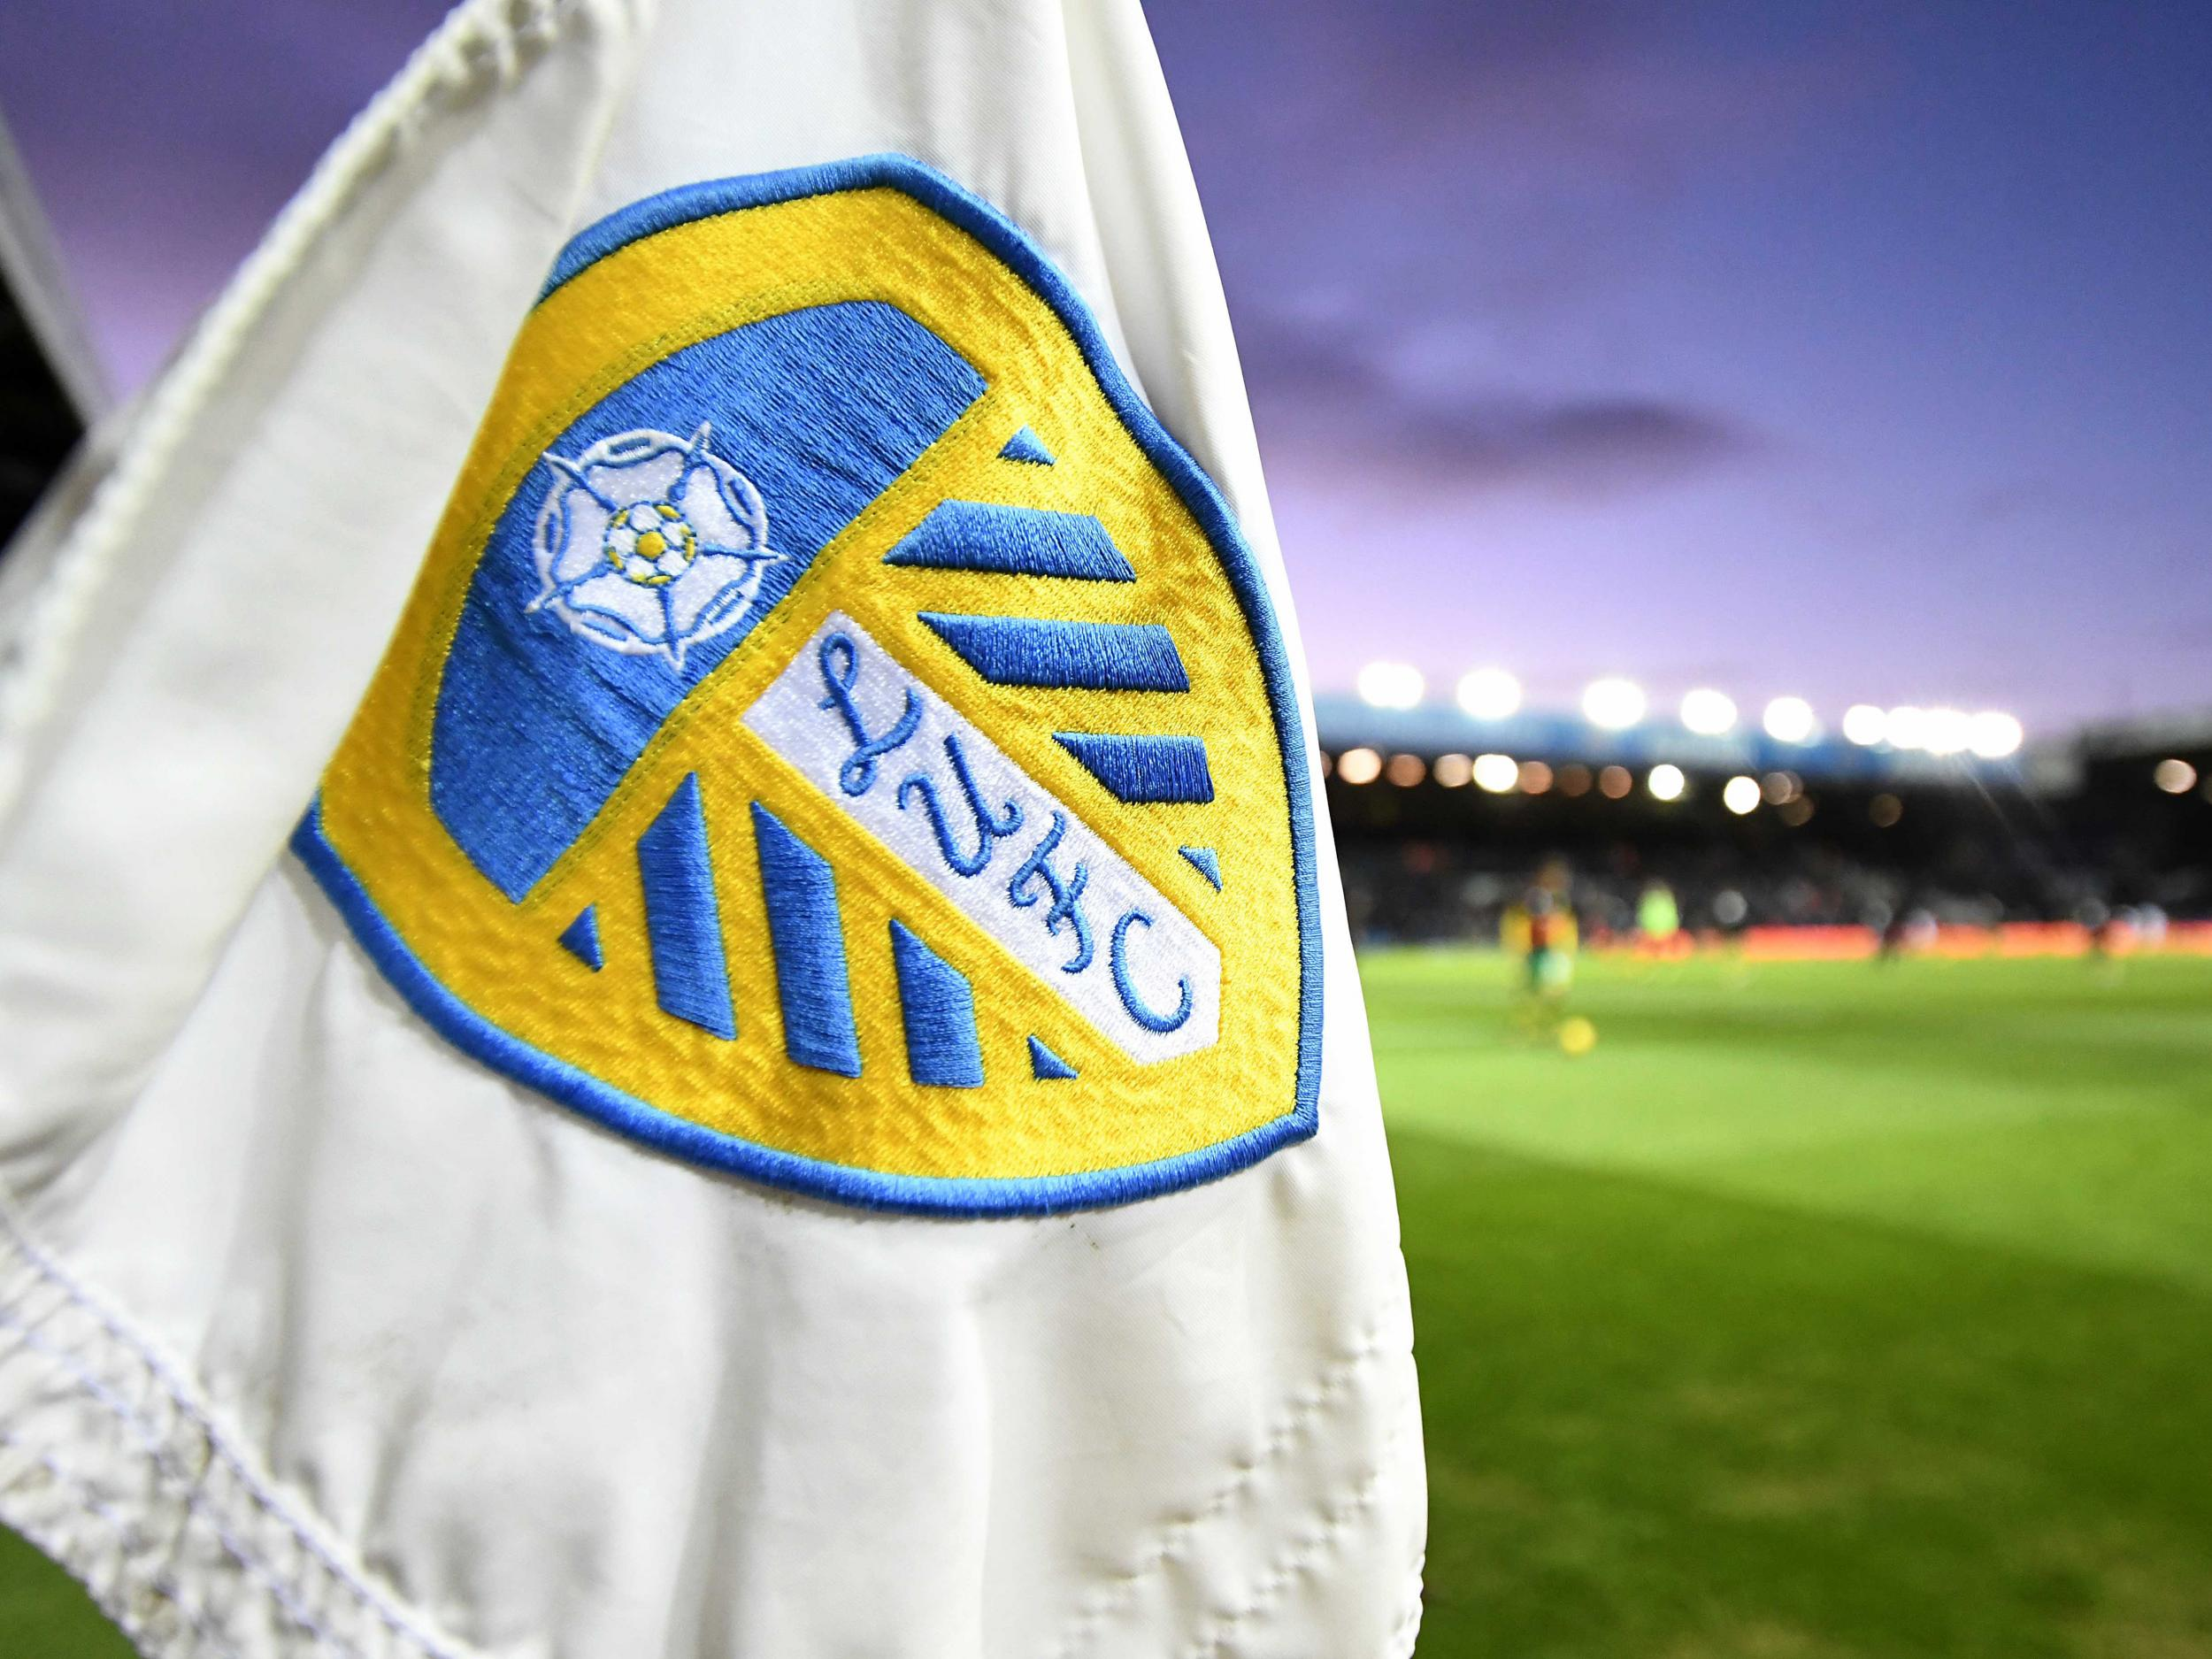 Leeds United news: Owner considering takeover offers that could help club 'compete with Man City'